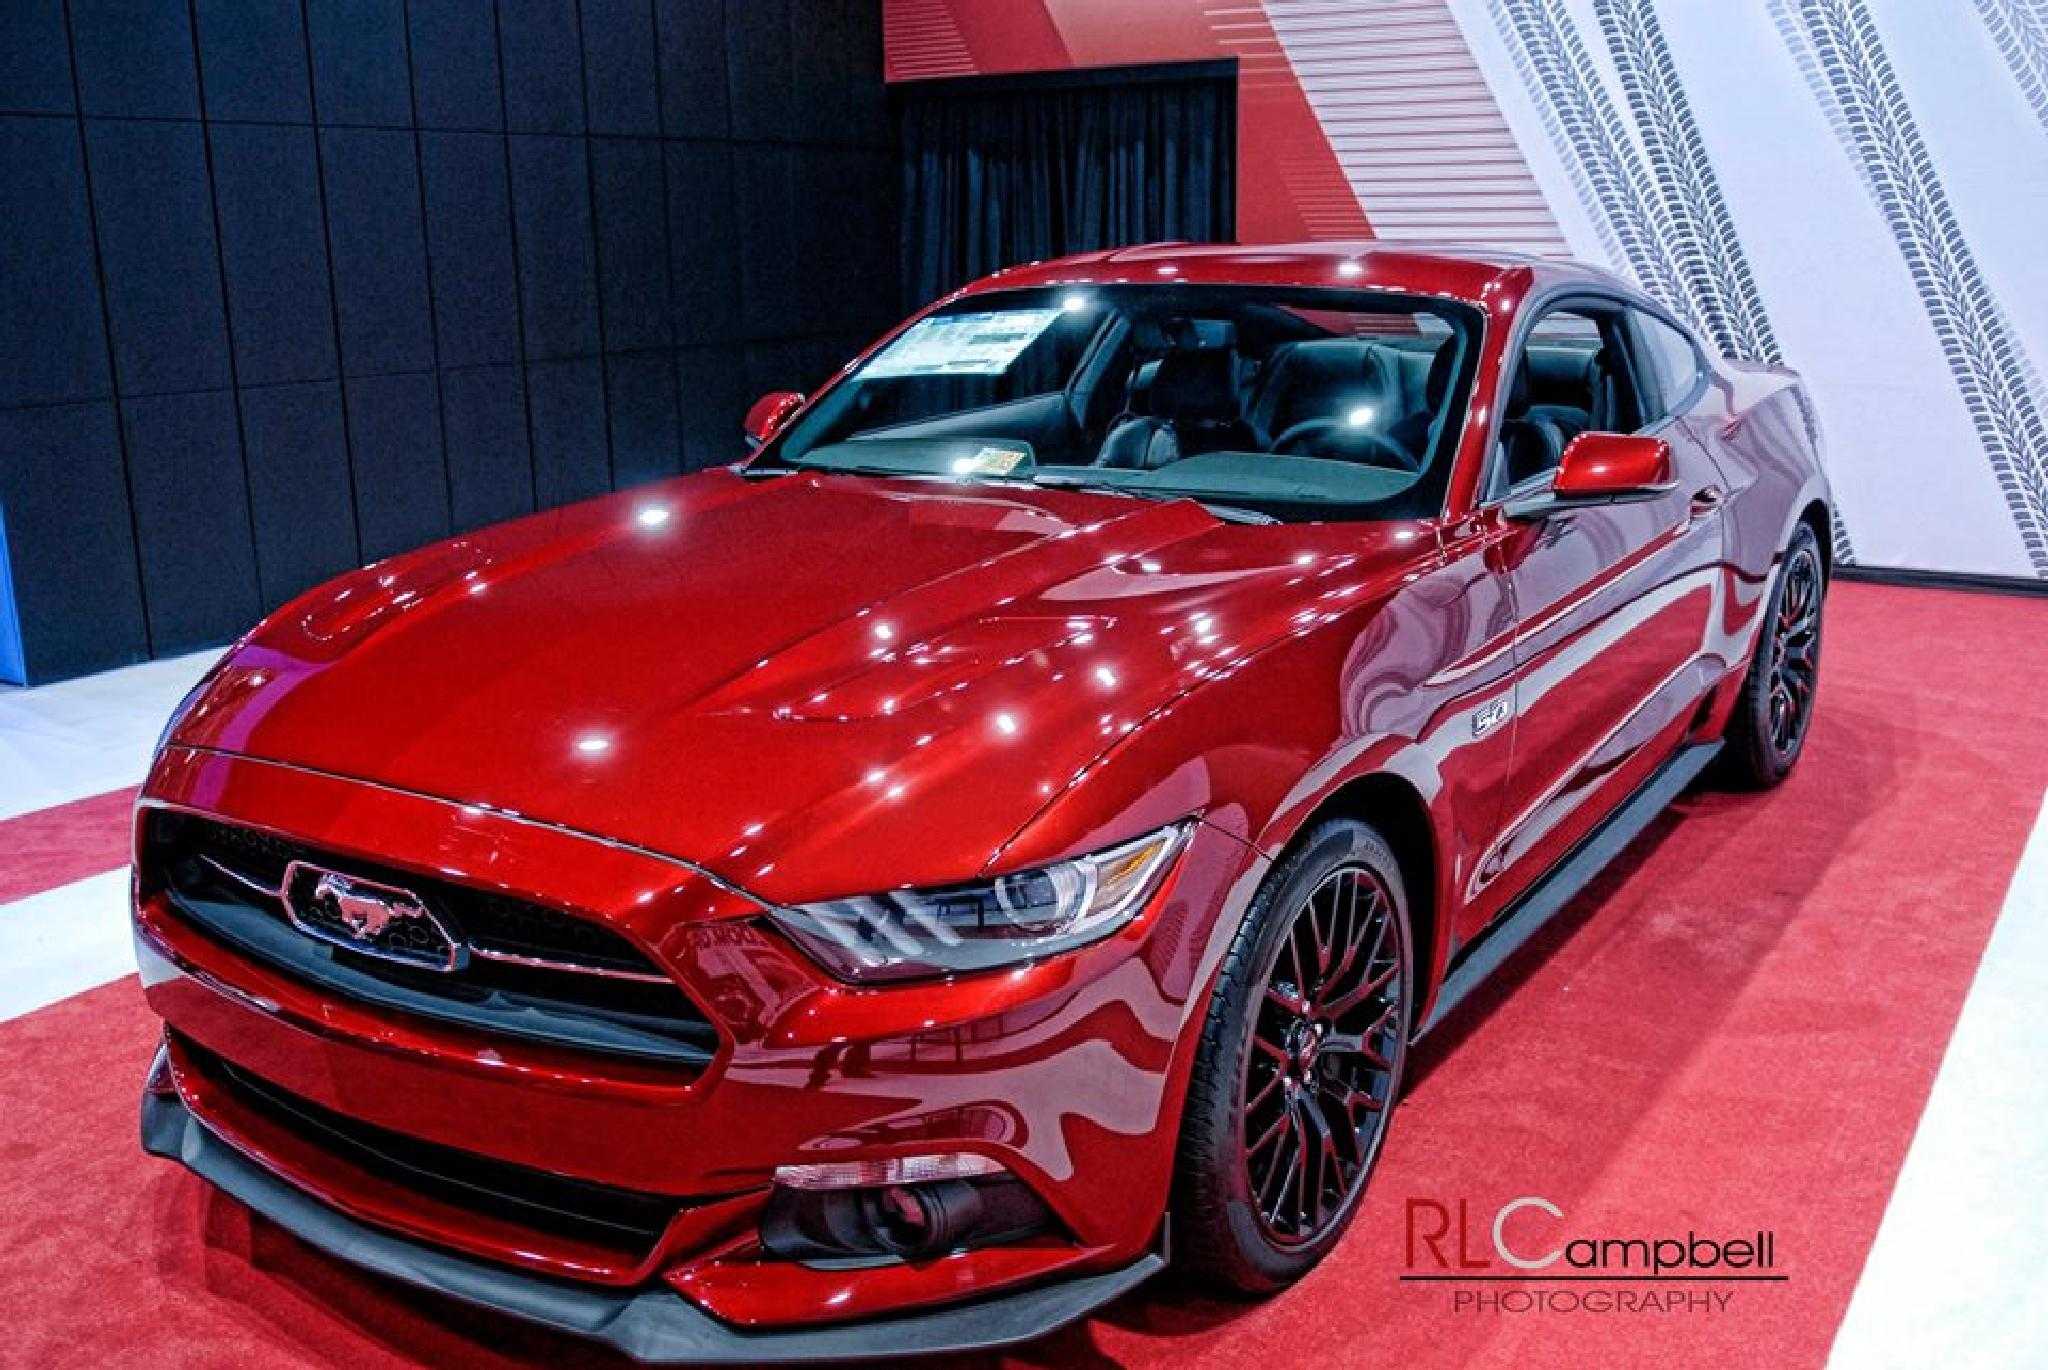 Liquid Red Mustang by rlcampbellphotography